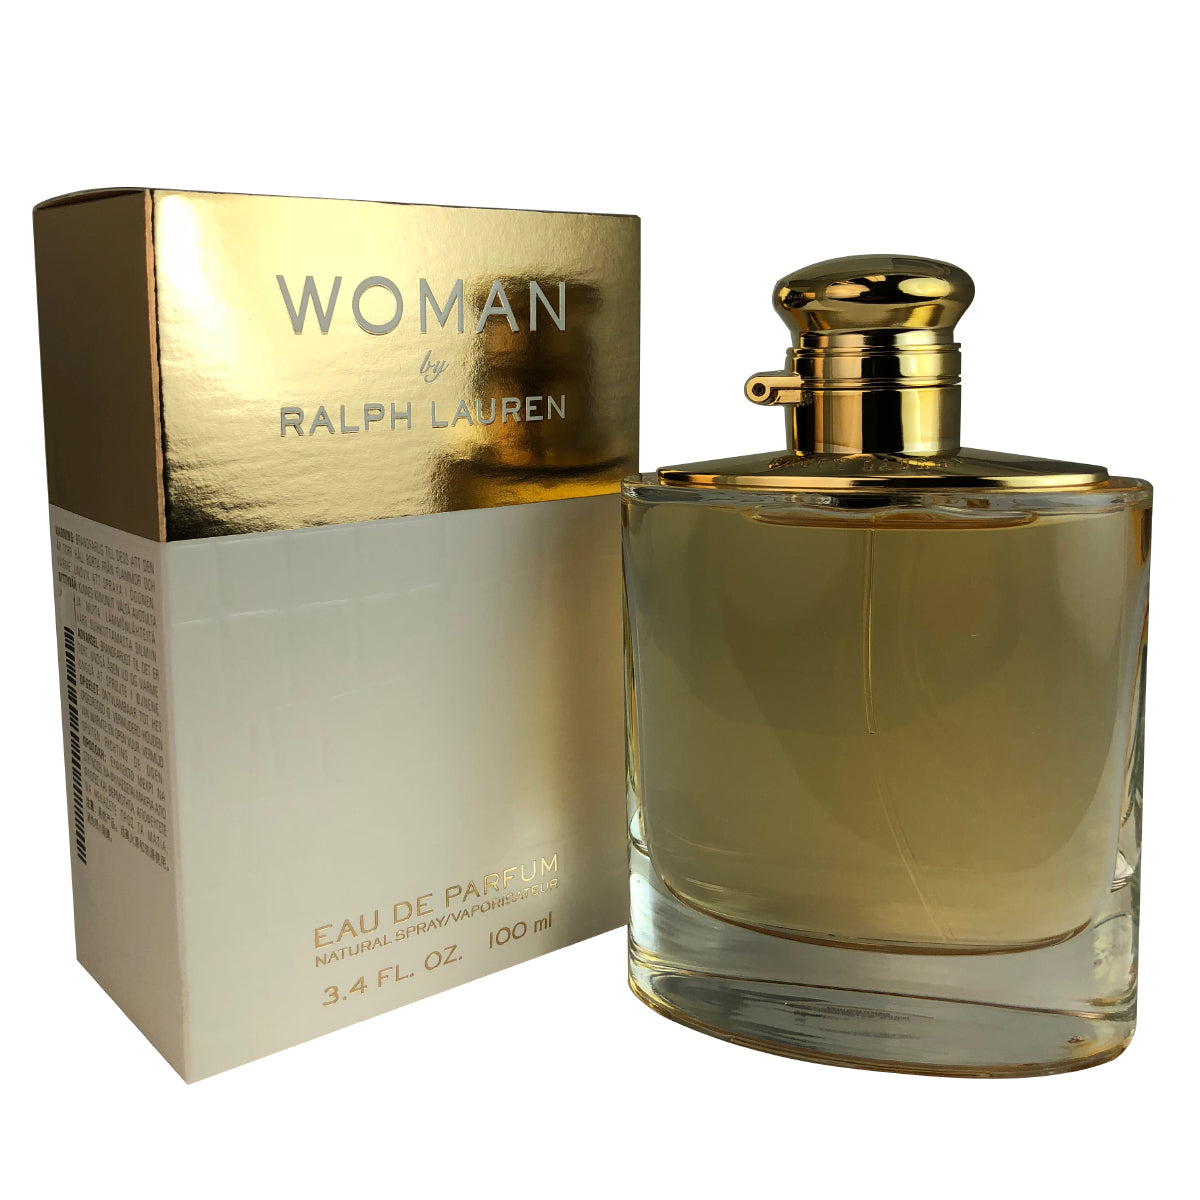 Women For Women by Ralph Lauren 3.4 oz Eau de Parfum Spray